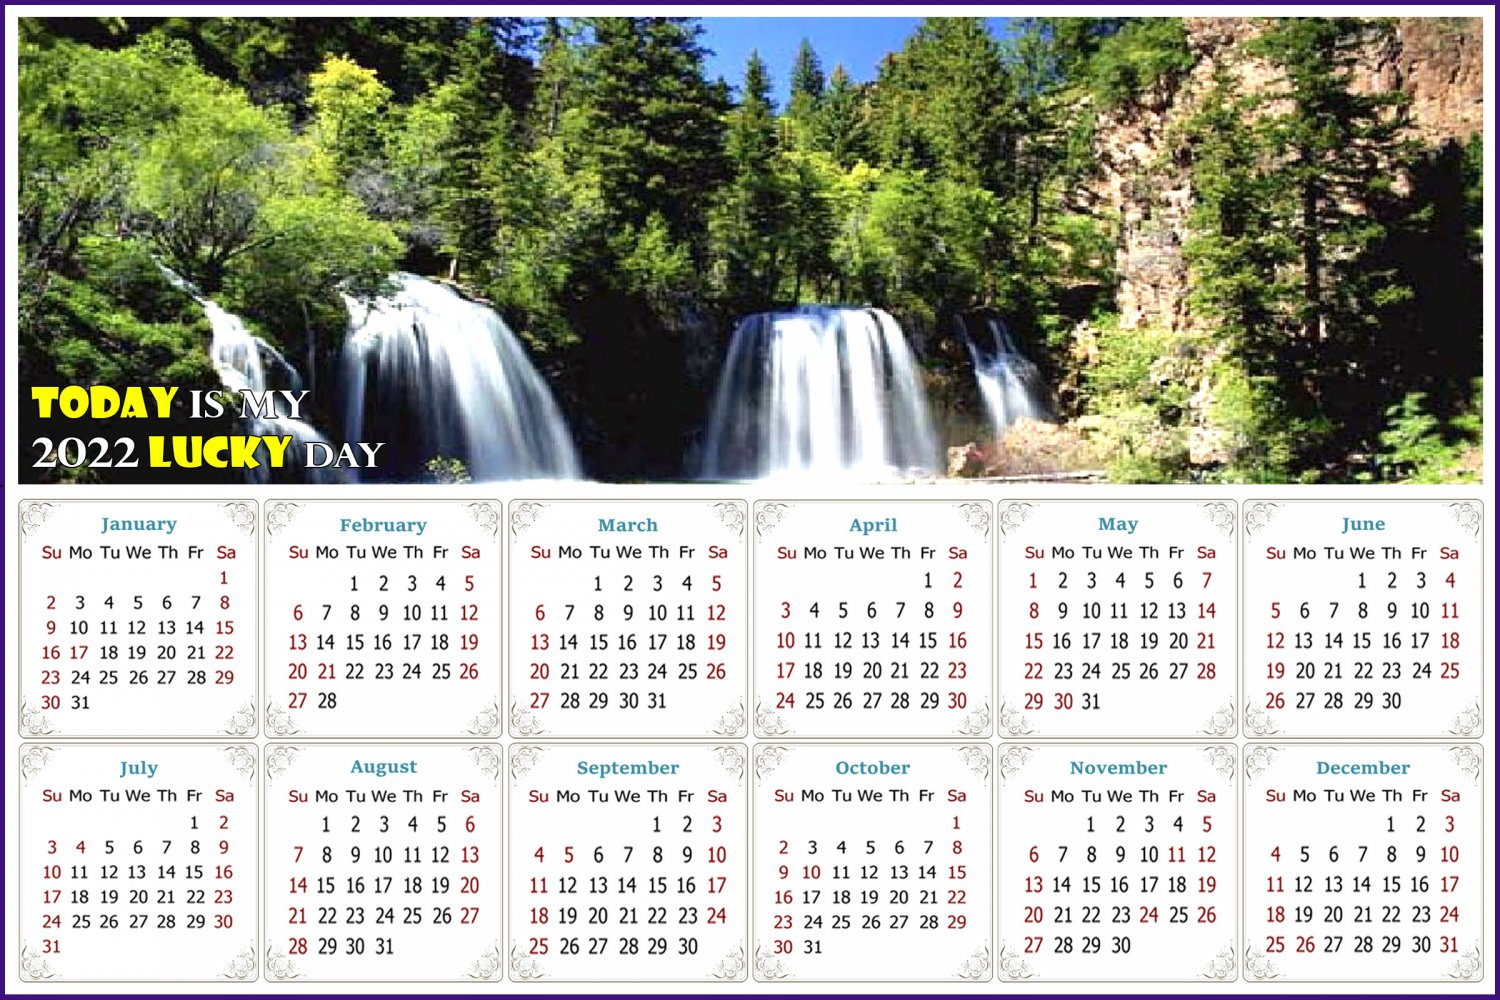 2022 Magnetic Calendar - Calendar Magnets - Today is my Lucky Day - Edition #30